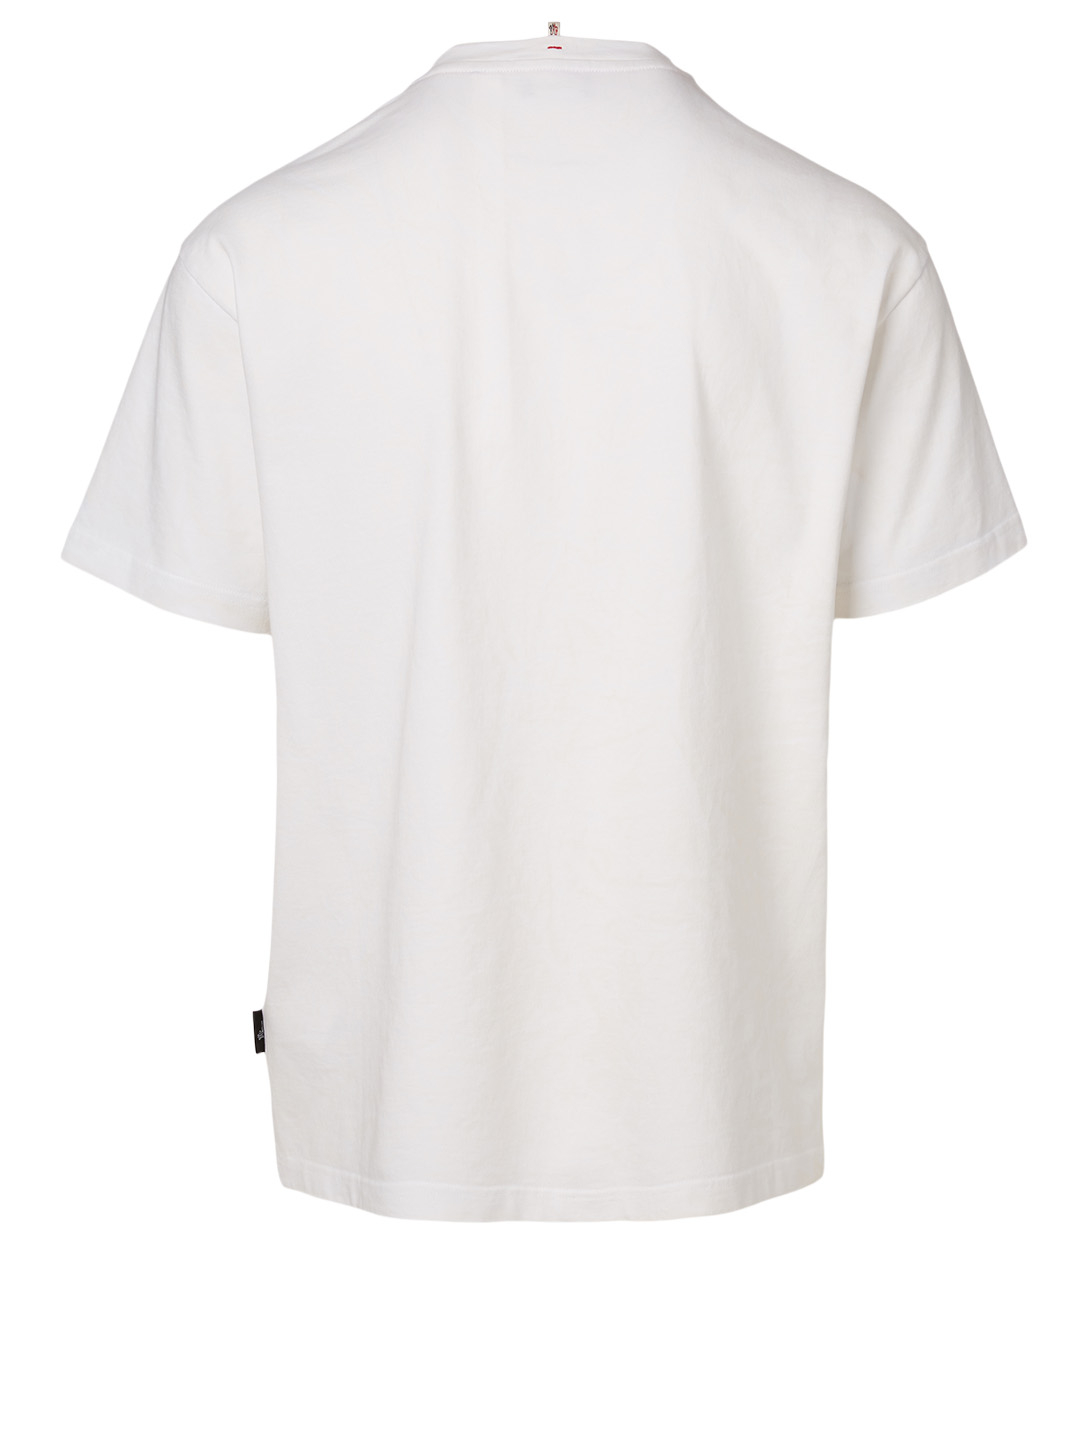 MONCLER GENIUS Woodstock Cotton T-Shirt Men's White